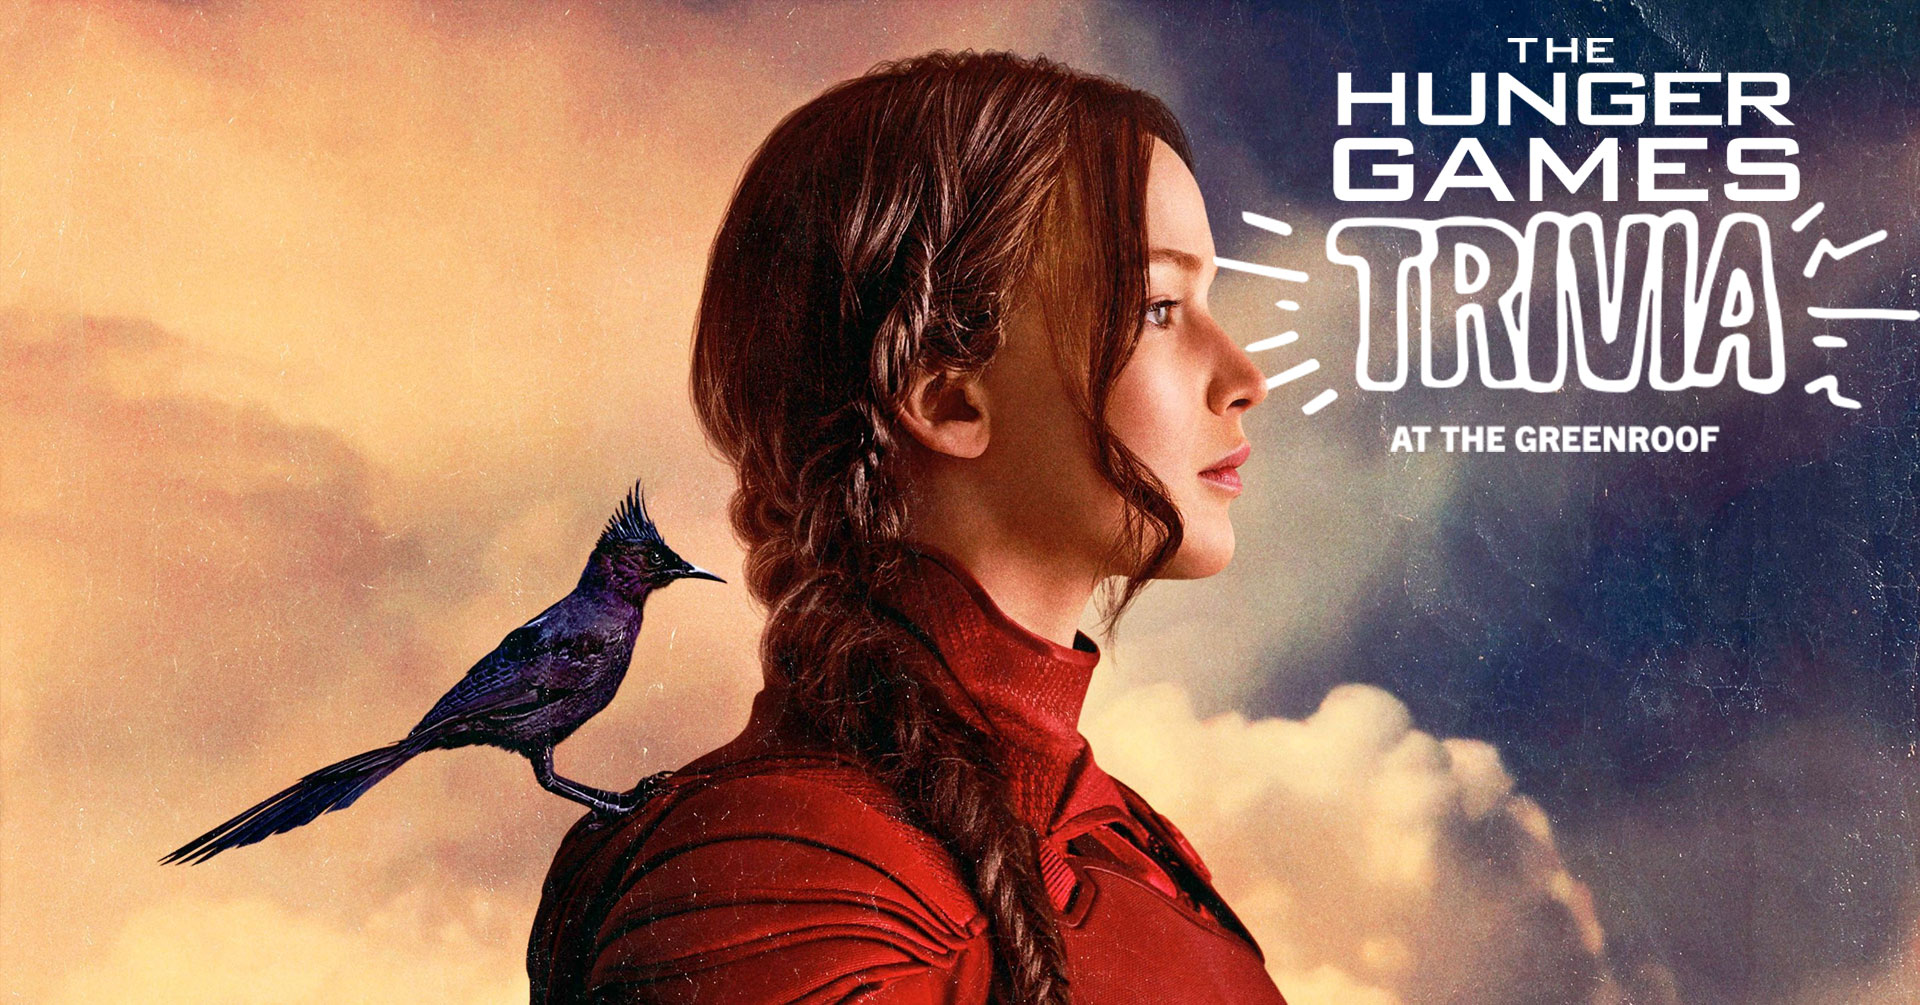 The Hunger Games TRIVIA at The Greenroof